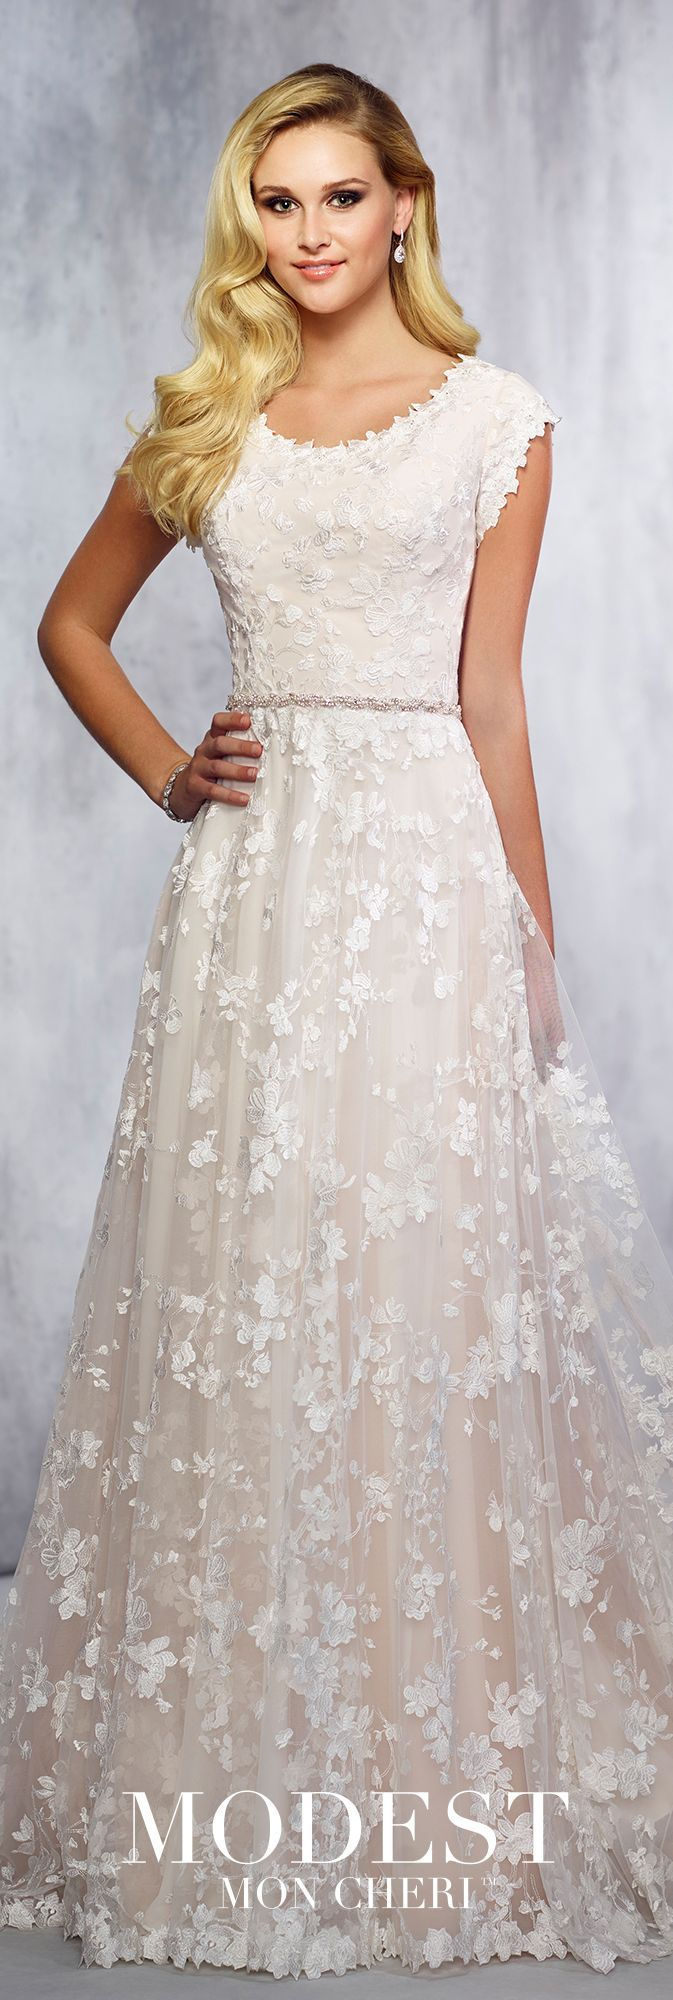 Lace cap sleeve a line wedding dress  Modest Wedding Dresses Fall  Collection  TR  lace and